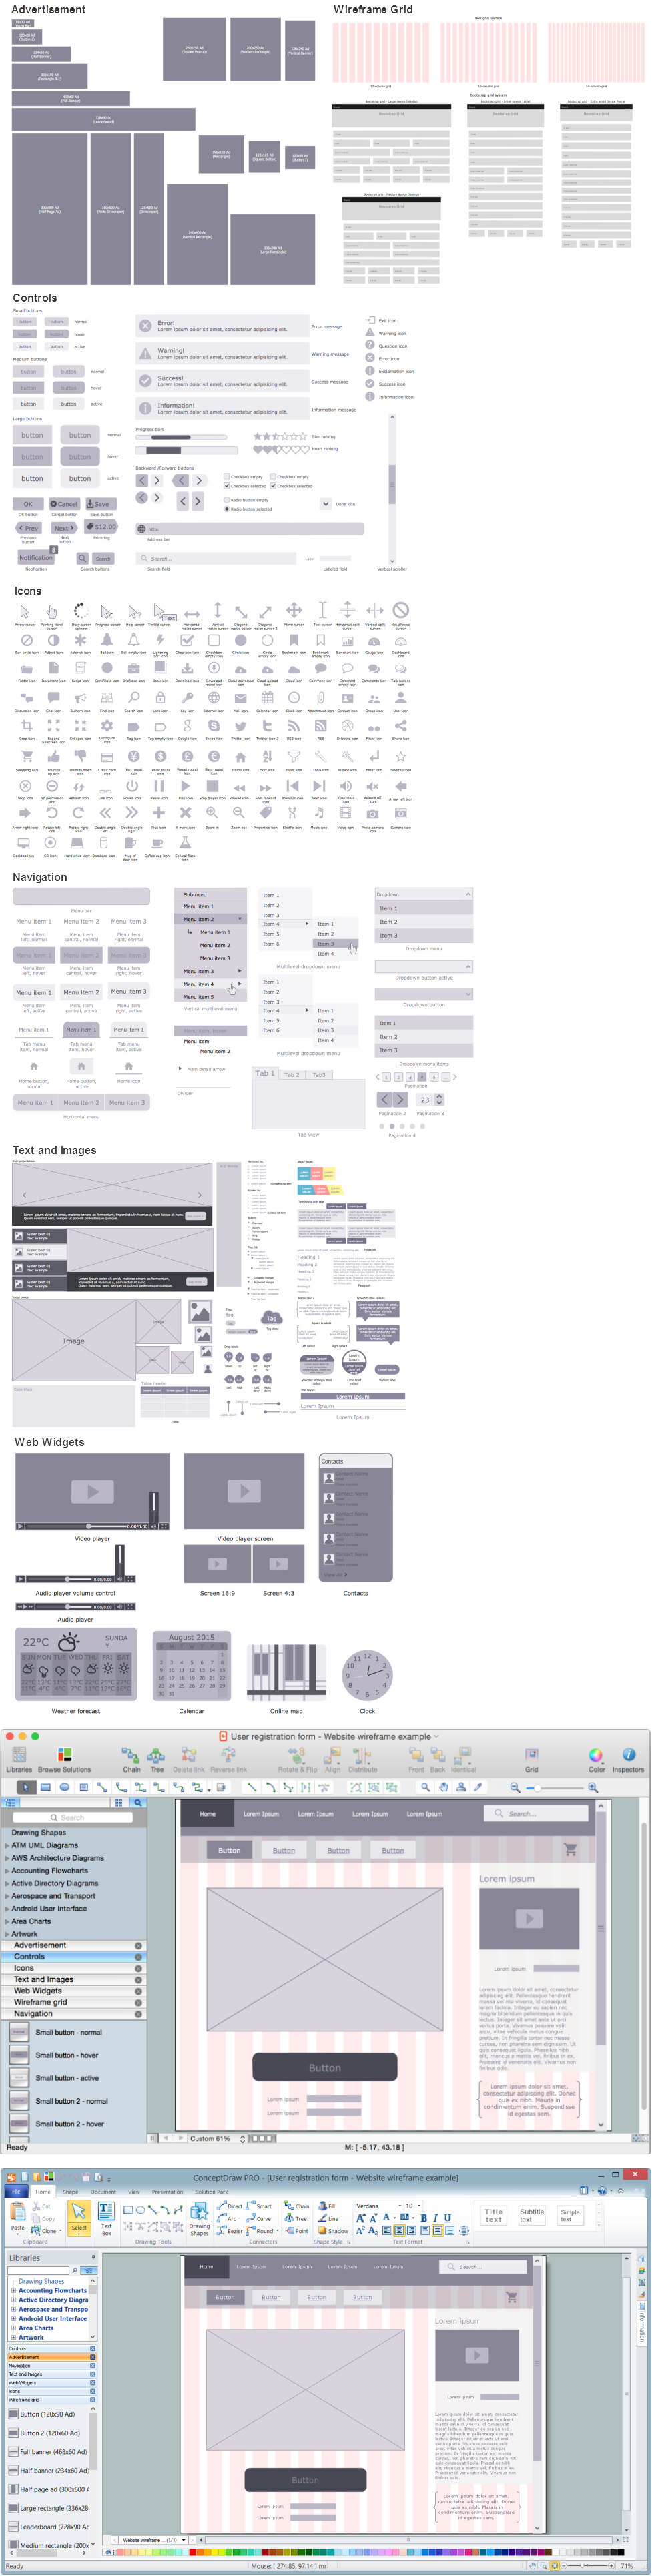 Wireframing *